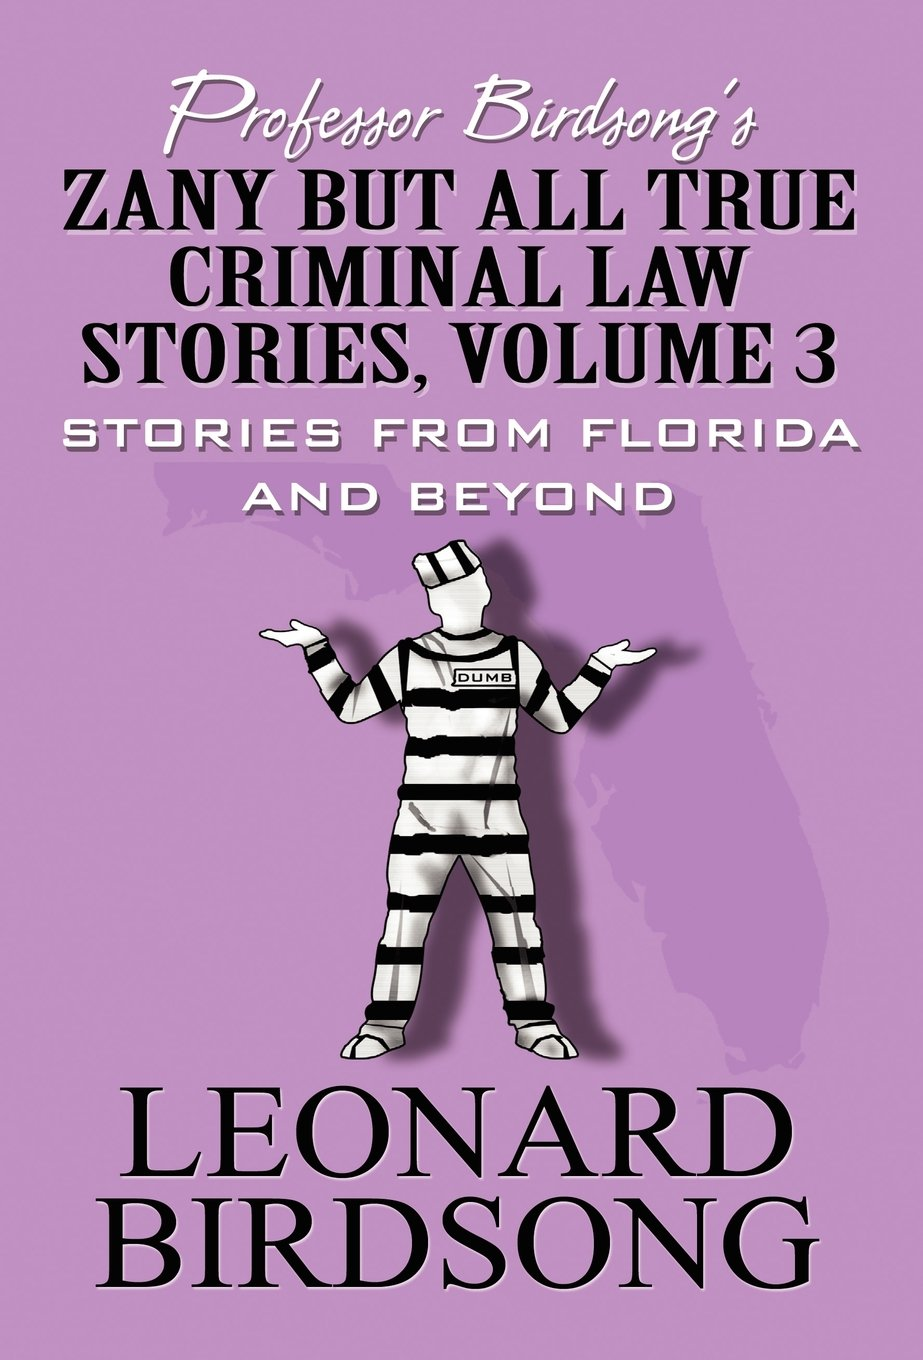 Professor Birdsong's Zany but All True Criminal Law Stories, Volume 3: Stories from Florida and Beyond pdf